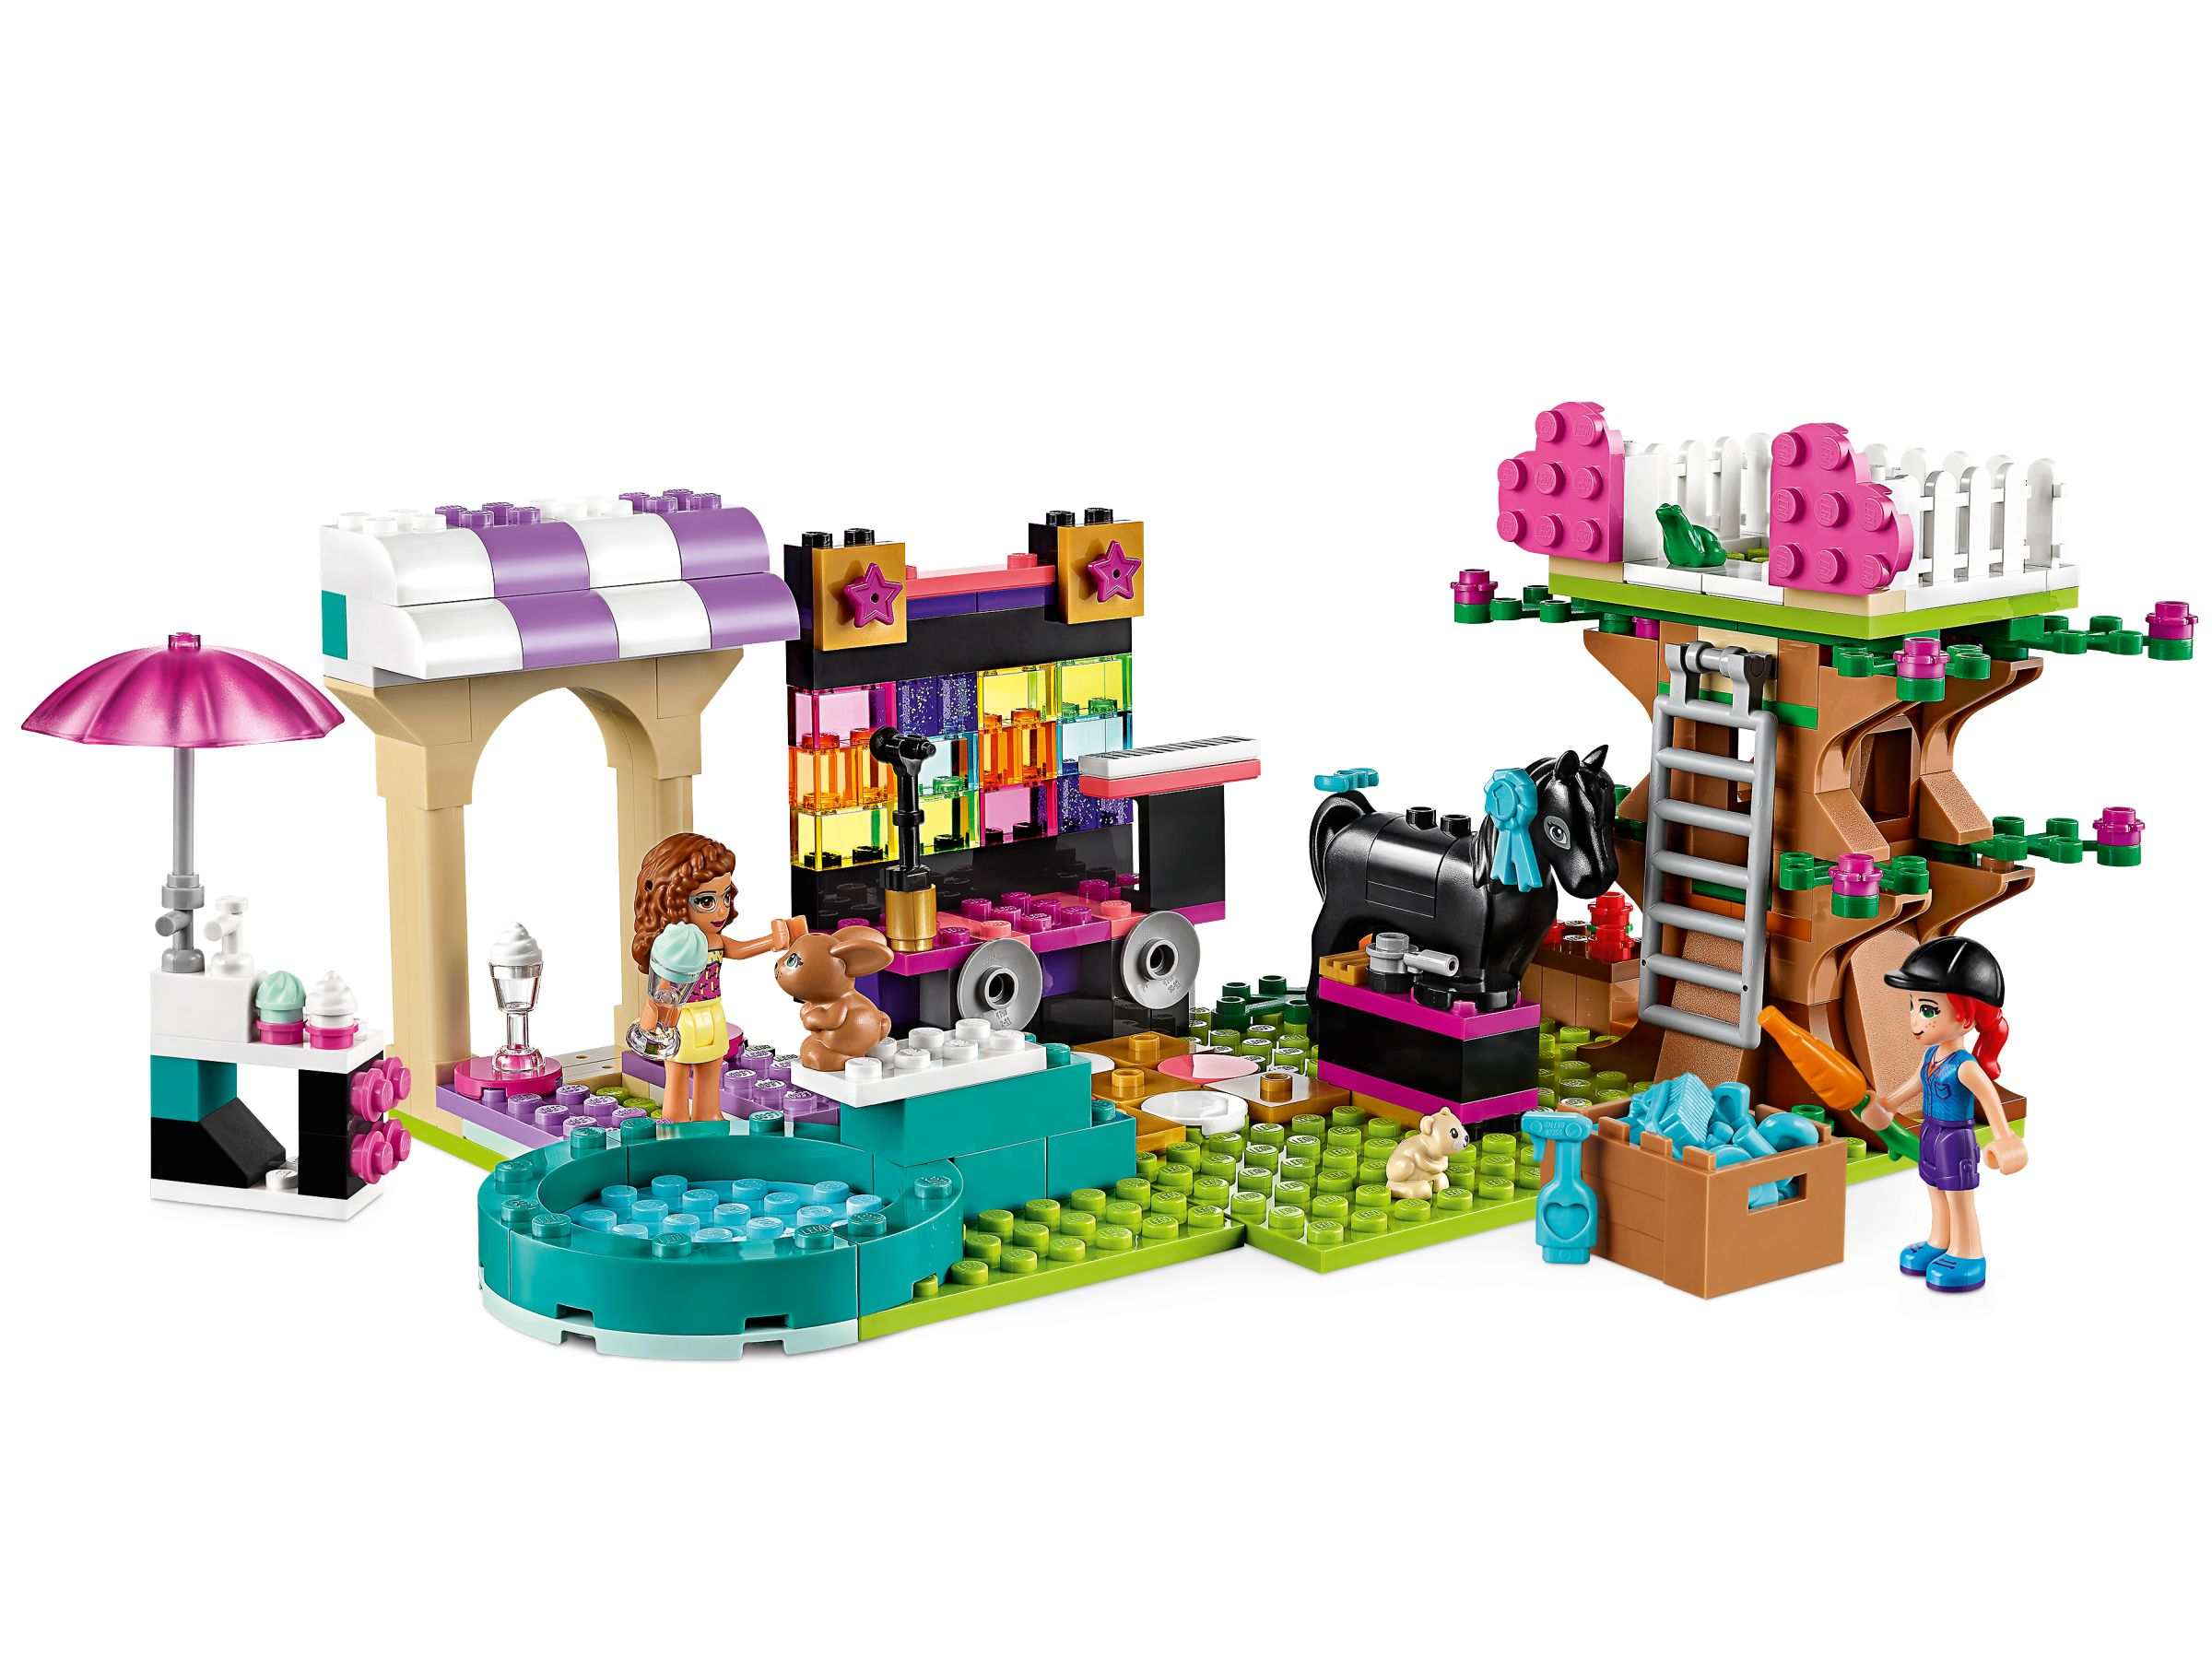 LEGO Friends 41431 Heartlake City Steinebox LEGO_41431_alt3.jpg